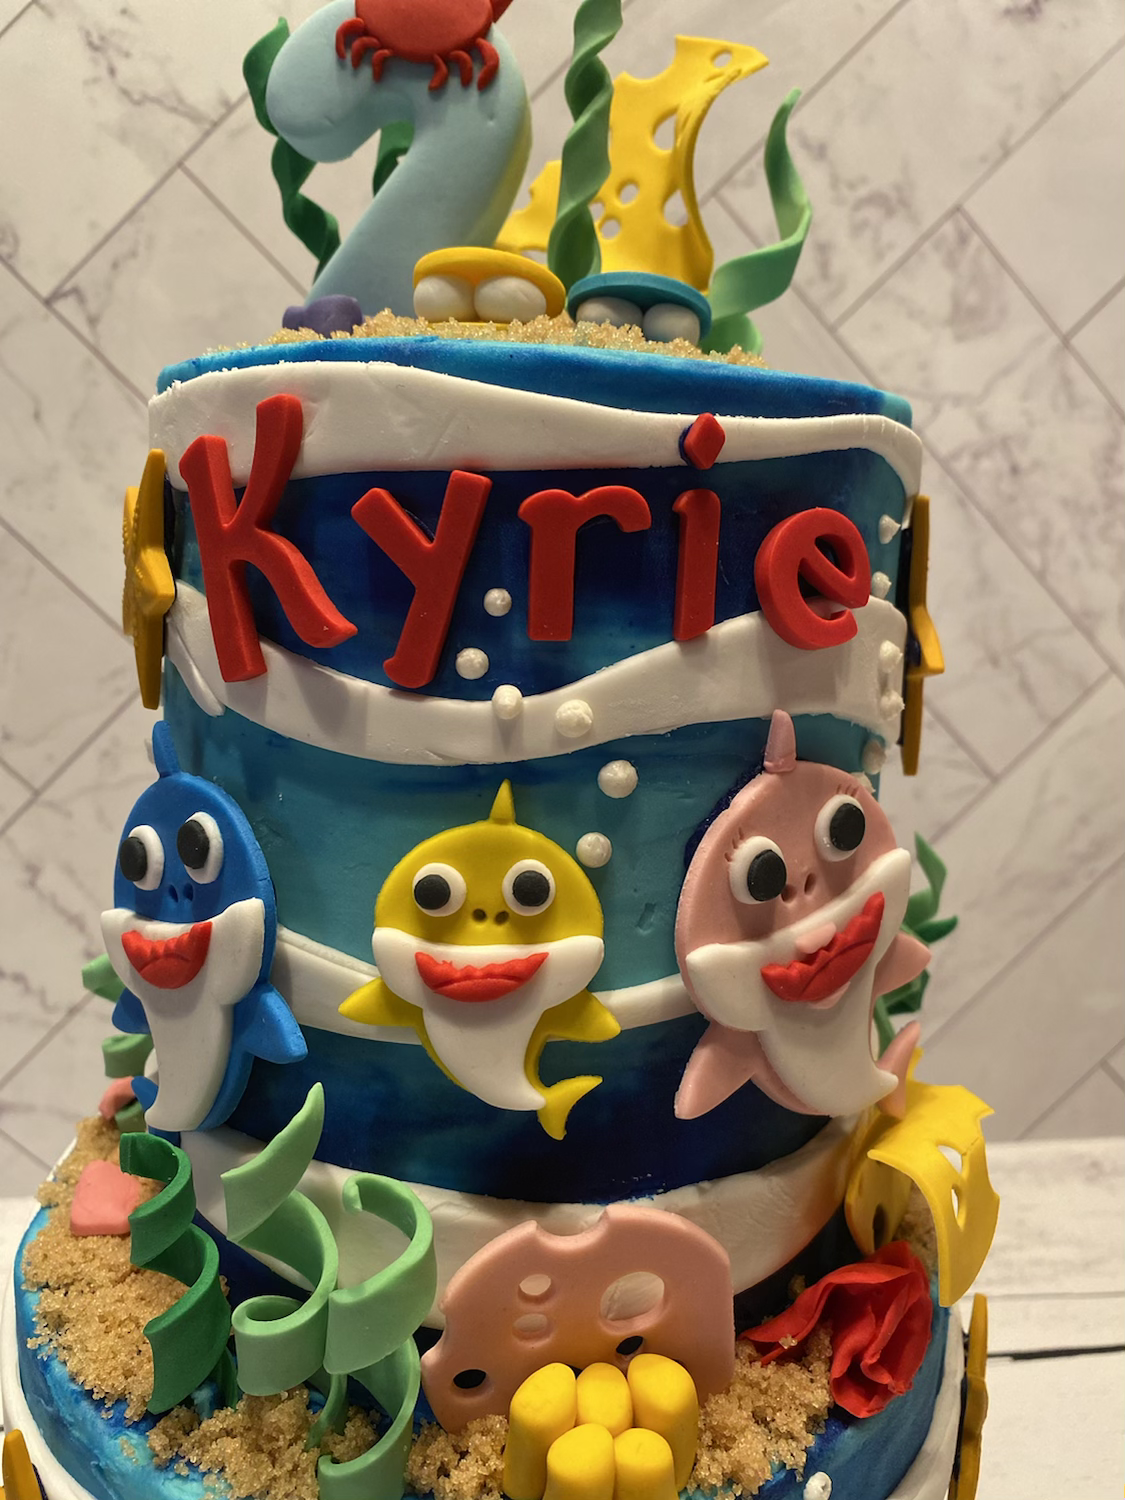 Happy 2nd Birthday Kyrie!